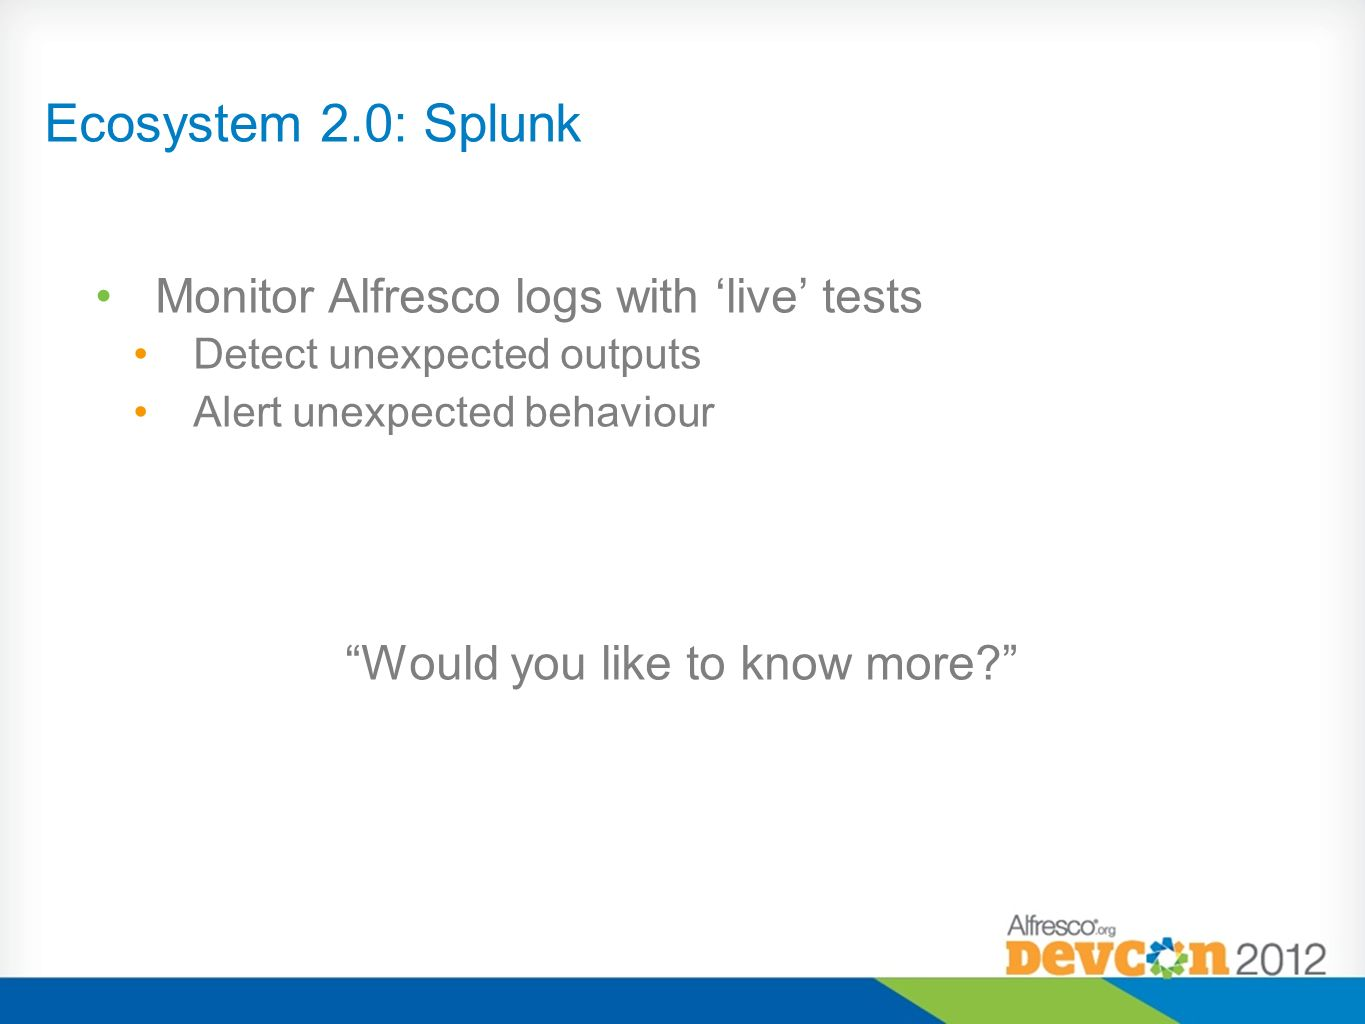 Ecosystem 2.0: Splunk Monitor Alfresco logs with live tests Detect unexpected outputs Alert unexpected behaviour Would you like to know more?